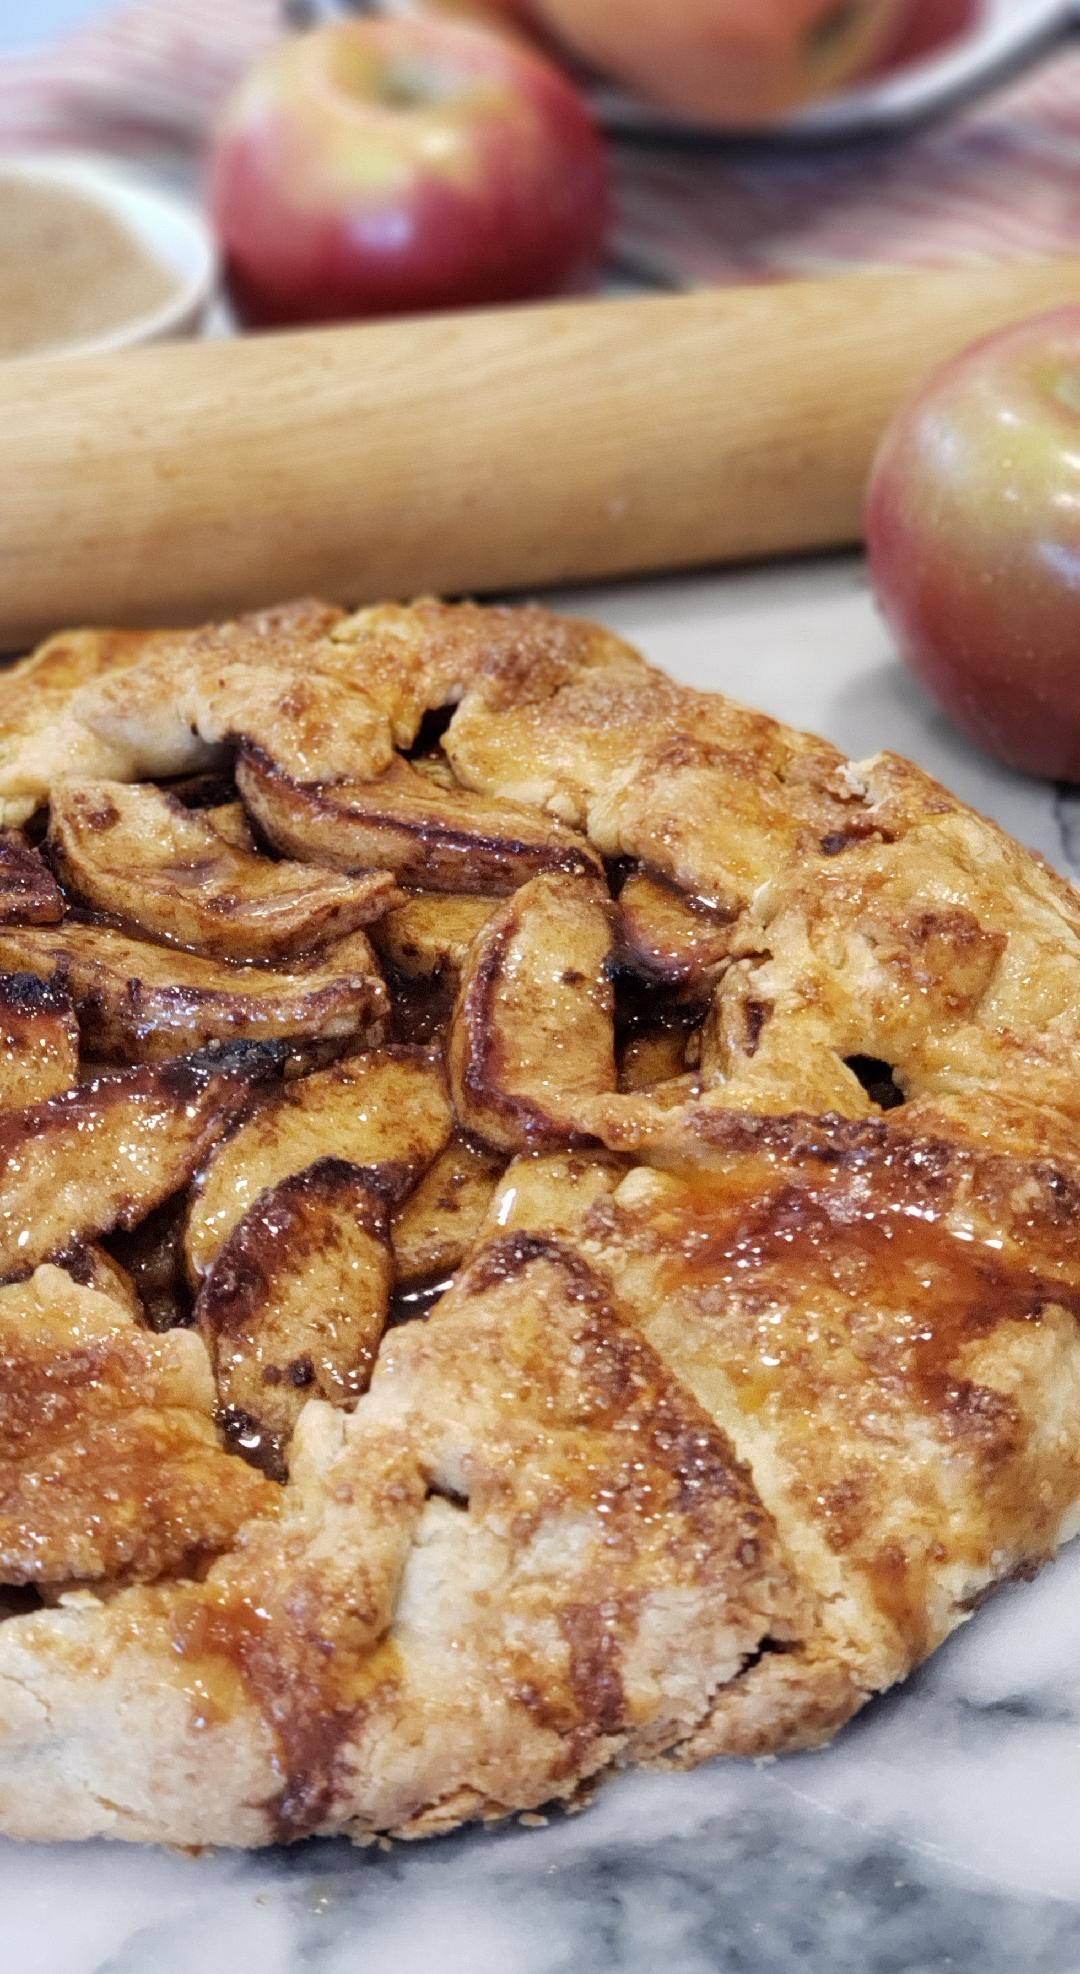 Apple Tart with rolling pin